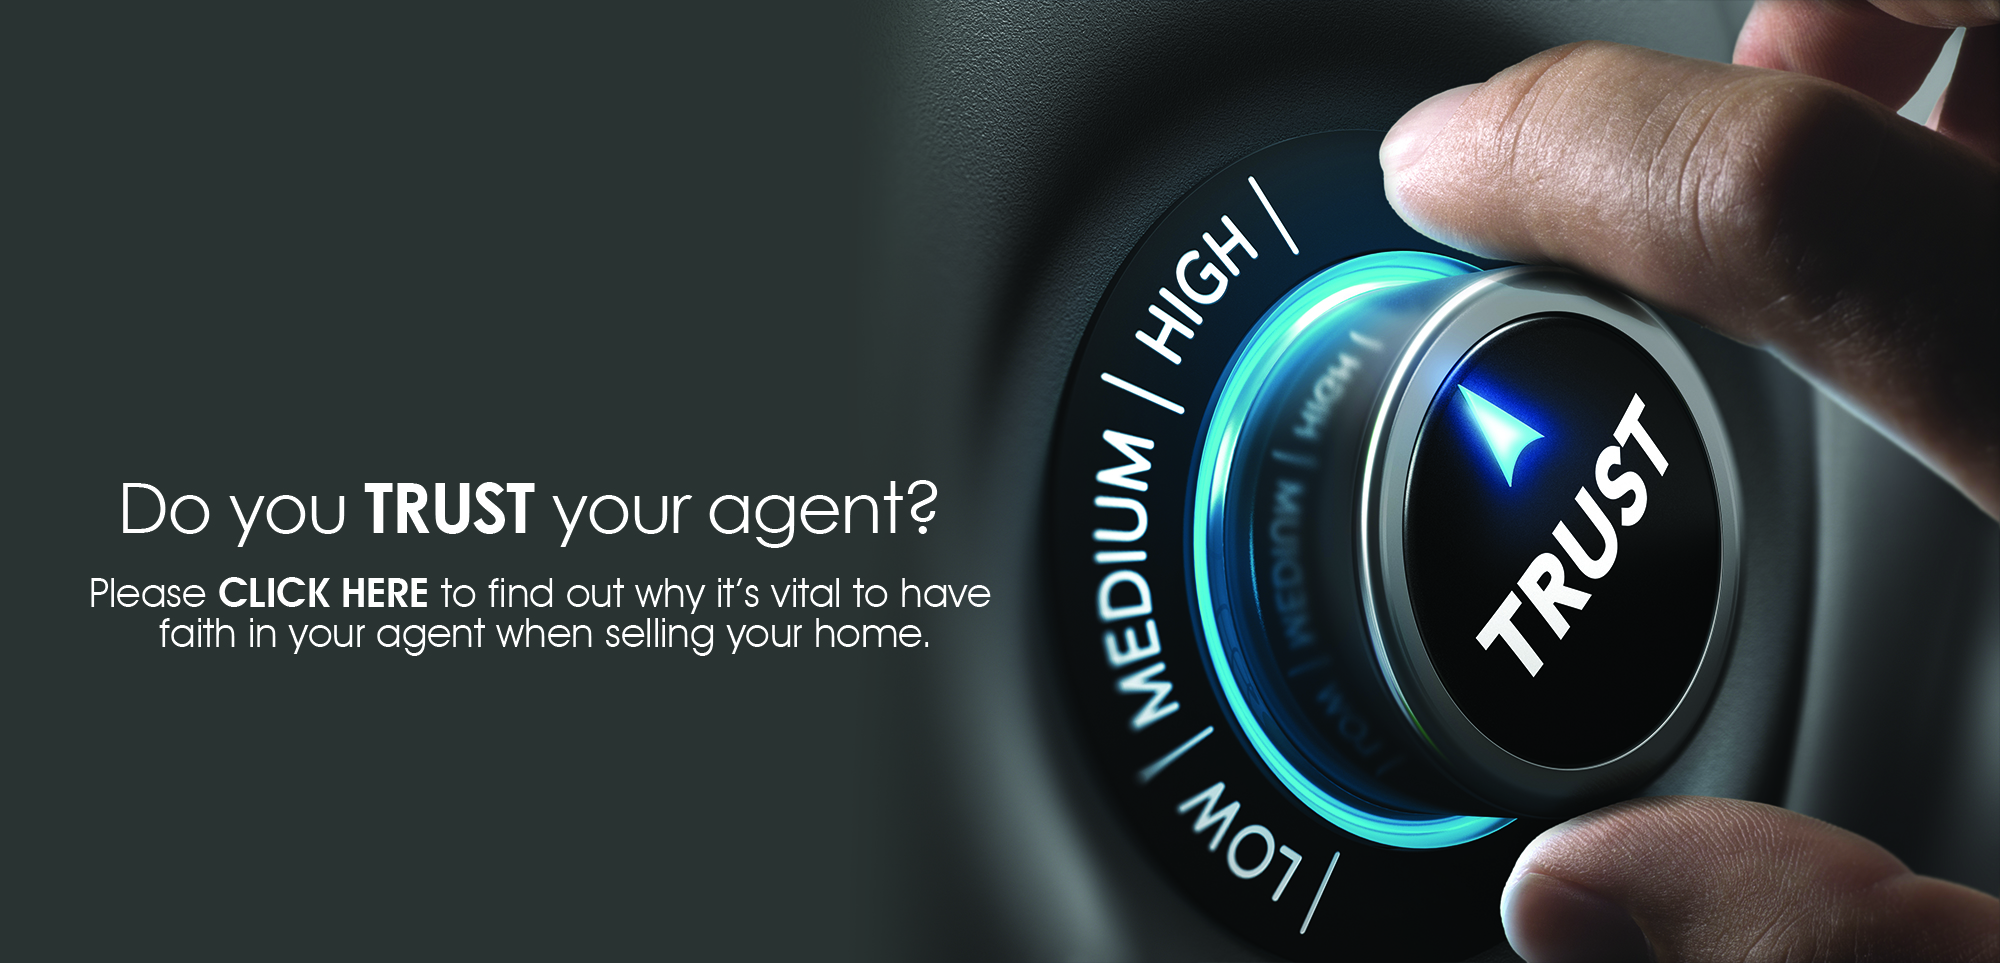 July Campaign - Trust your agent